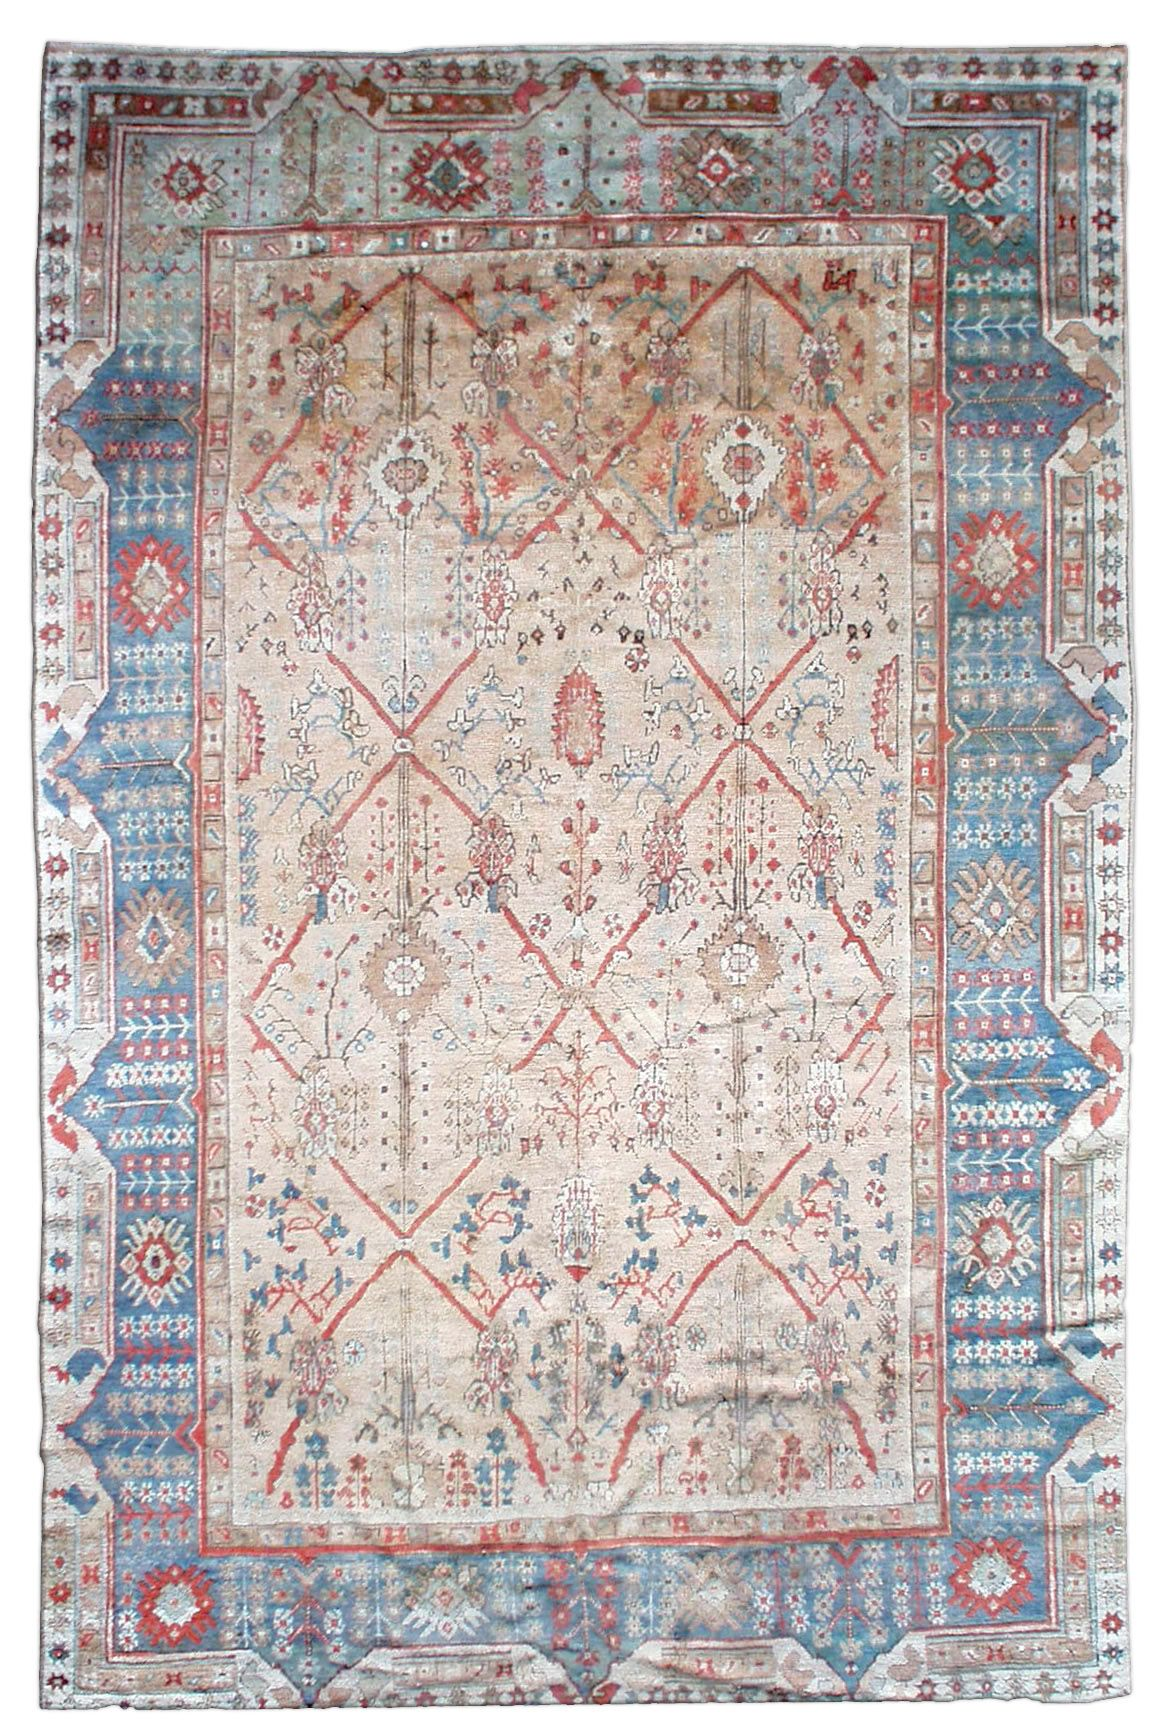 A late 19th century antique Turkish Ghiordes (Giordes) carpet, the camel field with vines forming an enlarged diamond lattice containing palmettes, flowering branches and scattered floral motifs within a sea blue flowerhead and raceme border. Circa 1880.